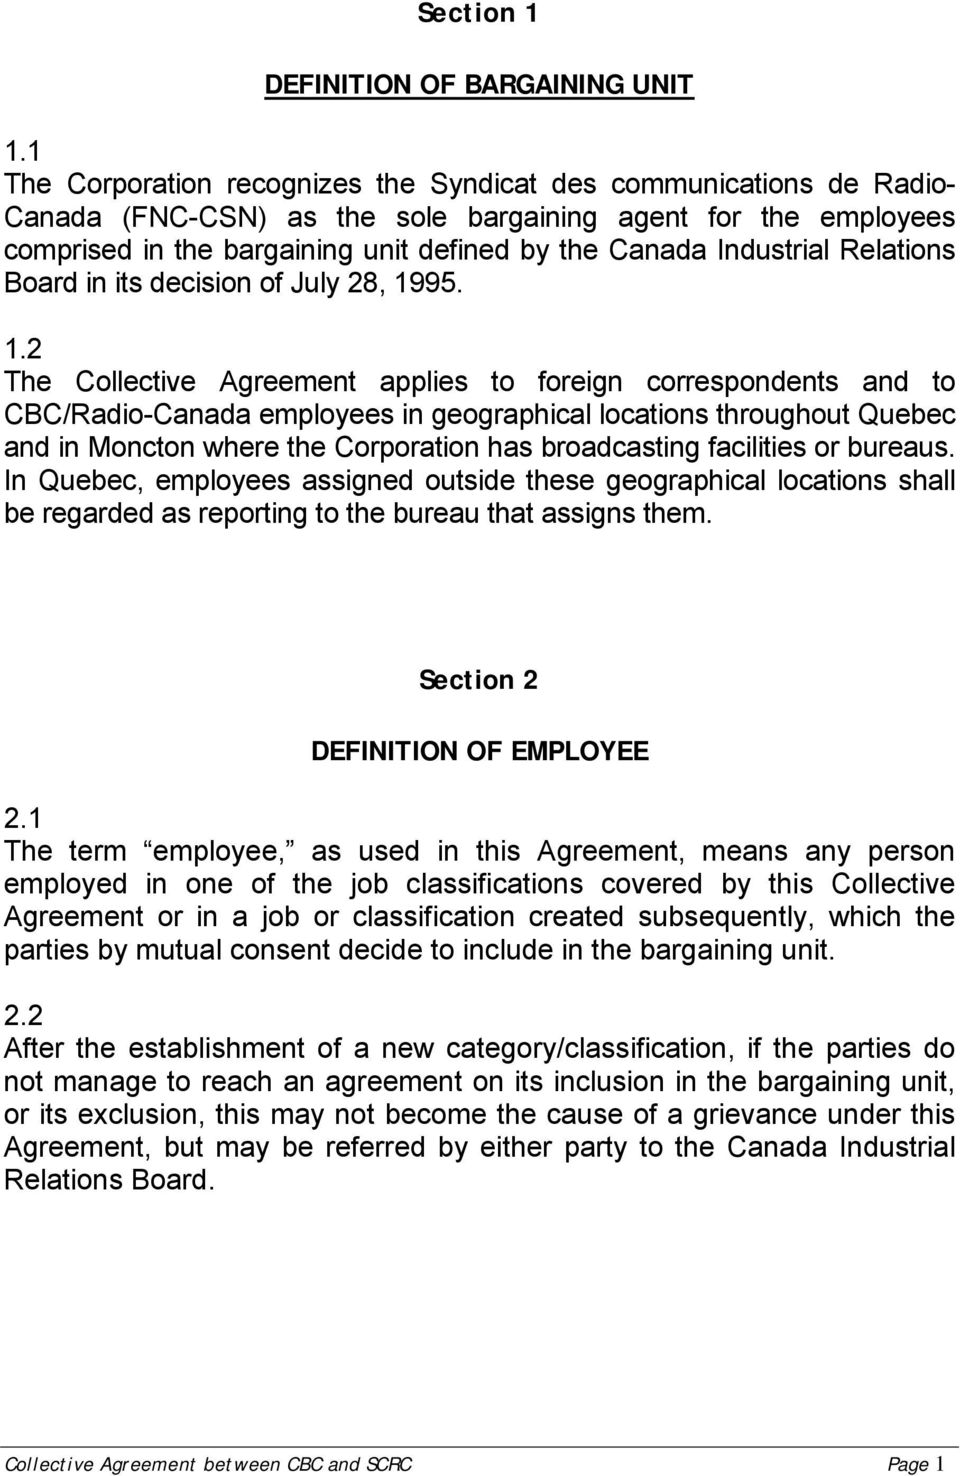 Industrial Relations Board in its decision of July 28, 19